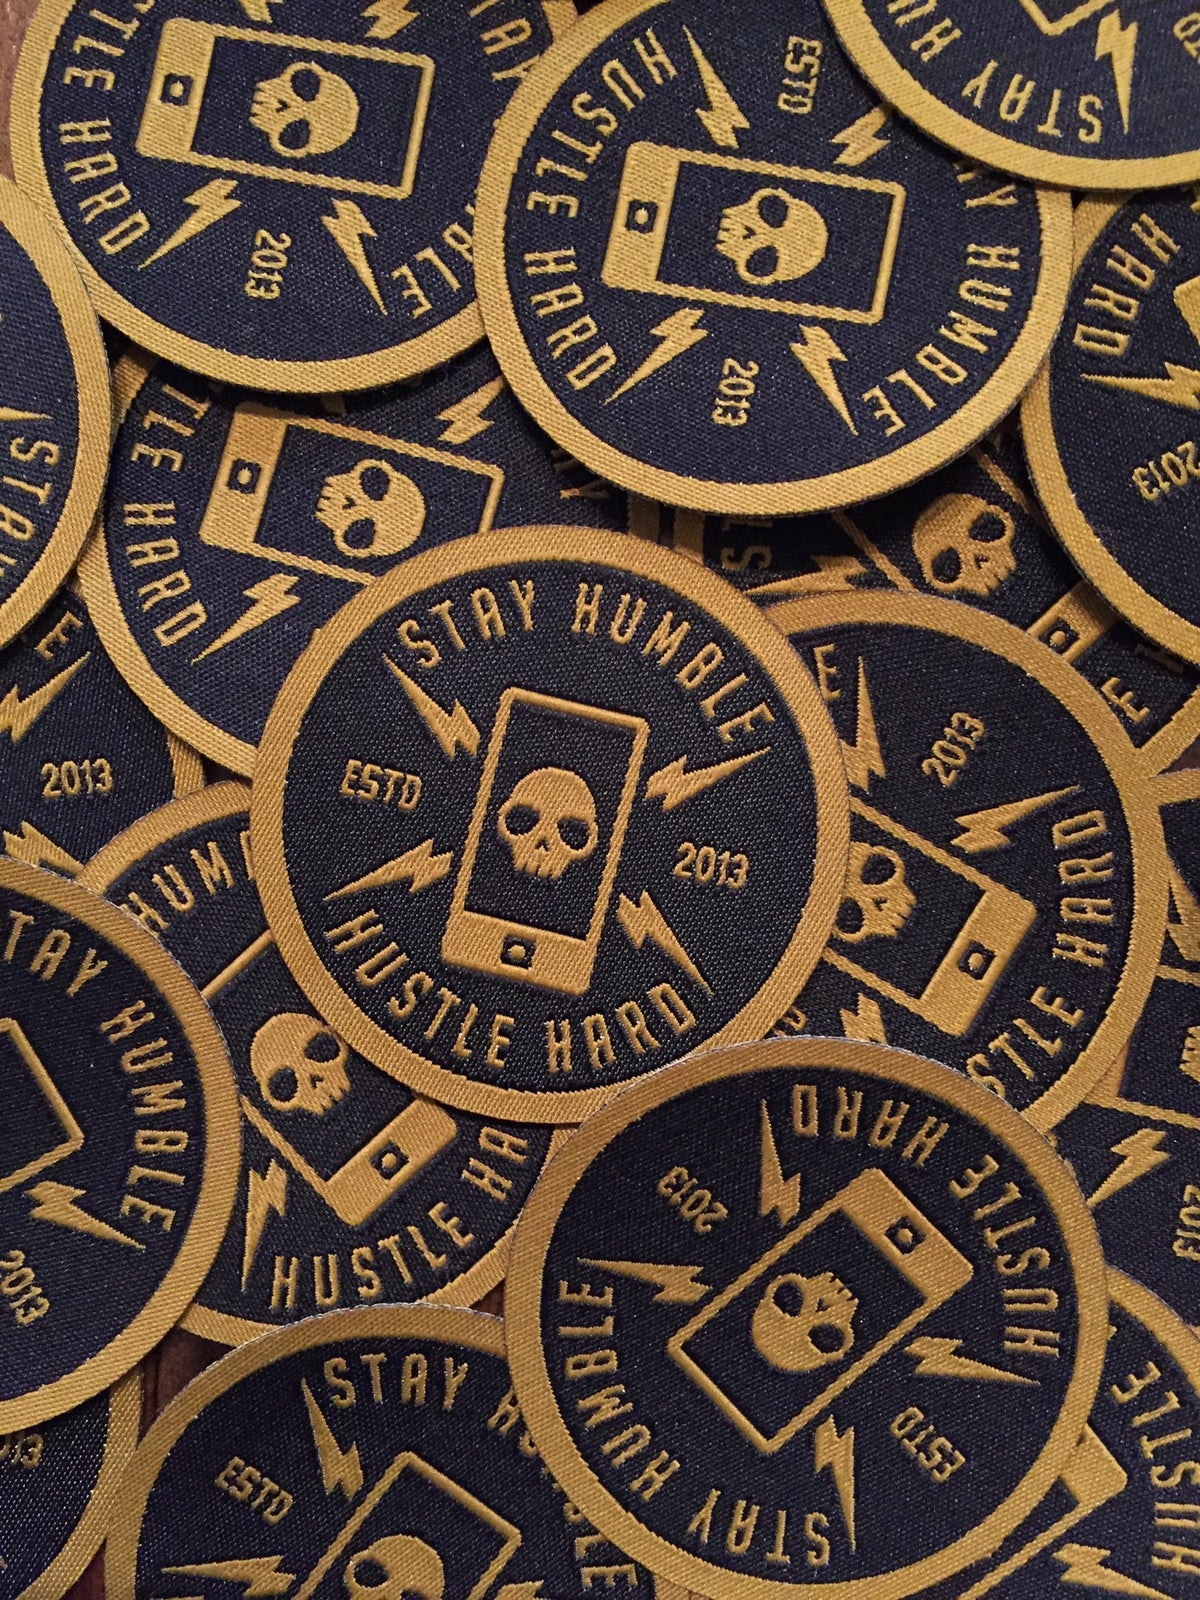 Image of Clutch STAY HUMBLE HUSTLE patches